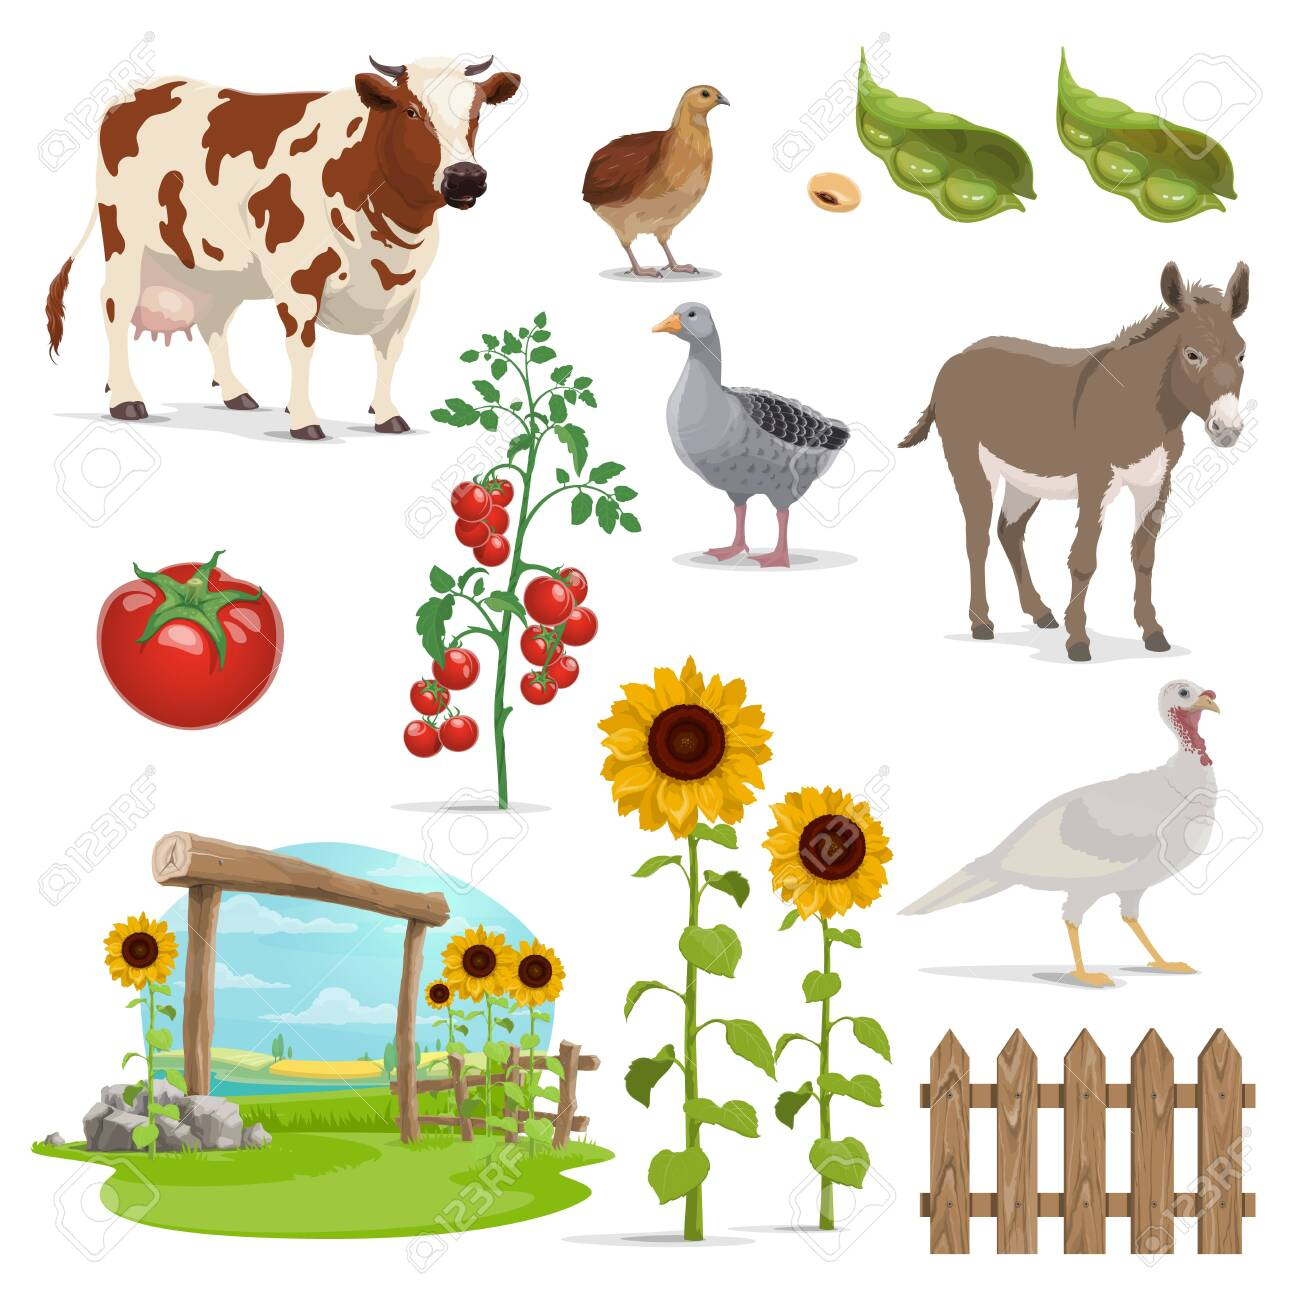 Farm And Agriculture Vector Field Animals Vegetable Food And Crop Plants Farmer Field Milk Cow And Village Nature Bean Grains Tomatoes Sunflowers And Fence Goose Turkey Quail And Donkey Royalty Free Cliparts